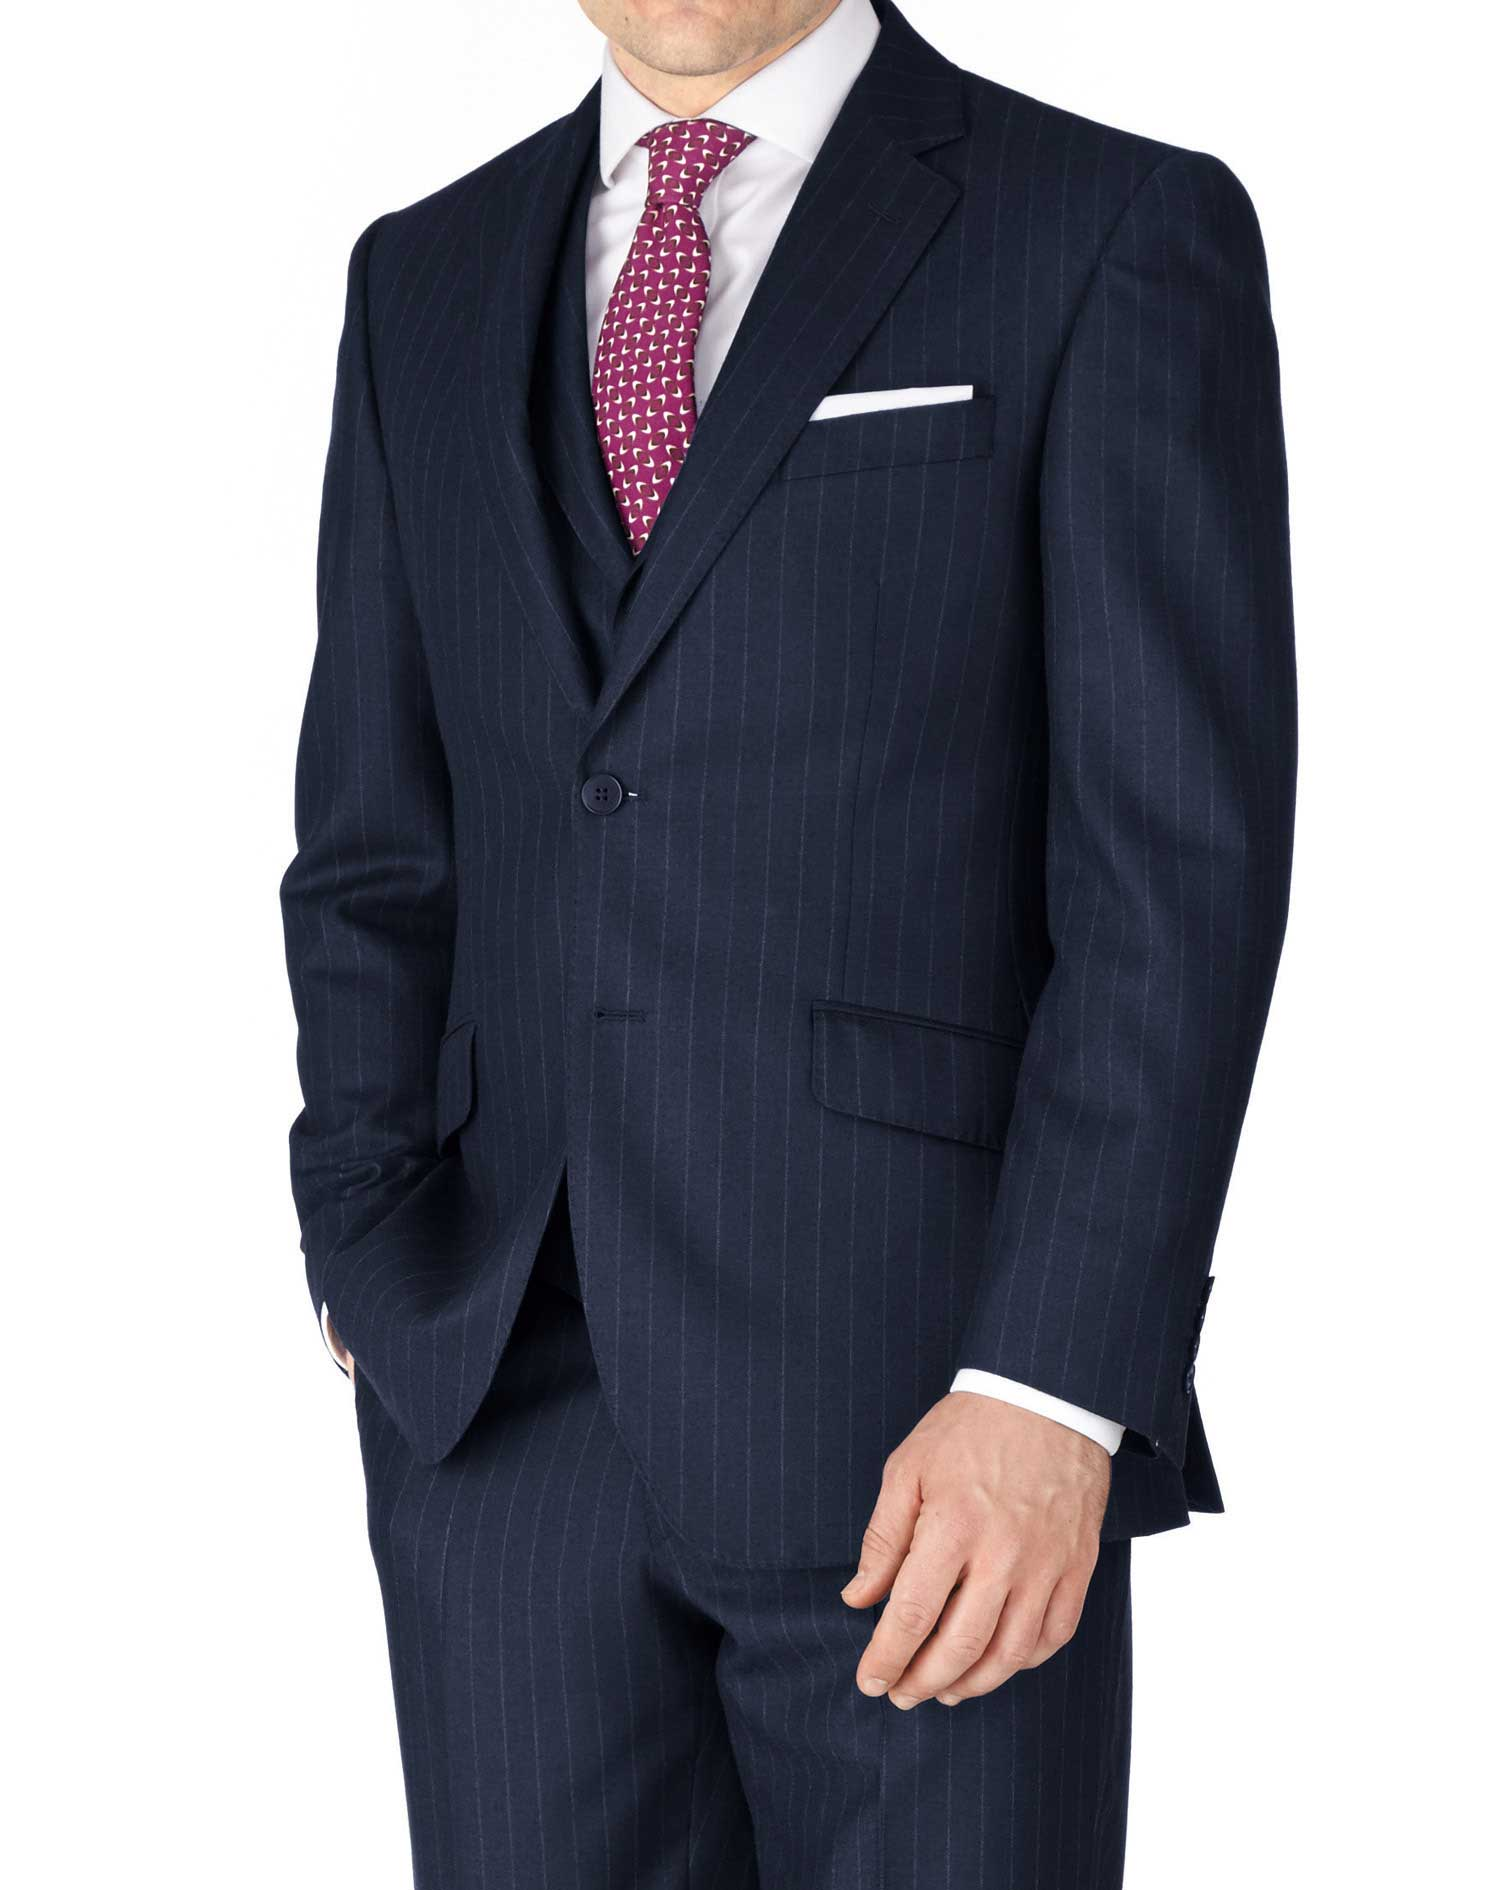 Navy Classic Fit Saxony Business Suit Wool Jacket Size 48 Regular by Charles Tyrwhitt